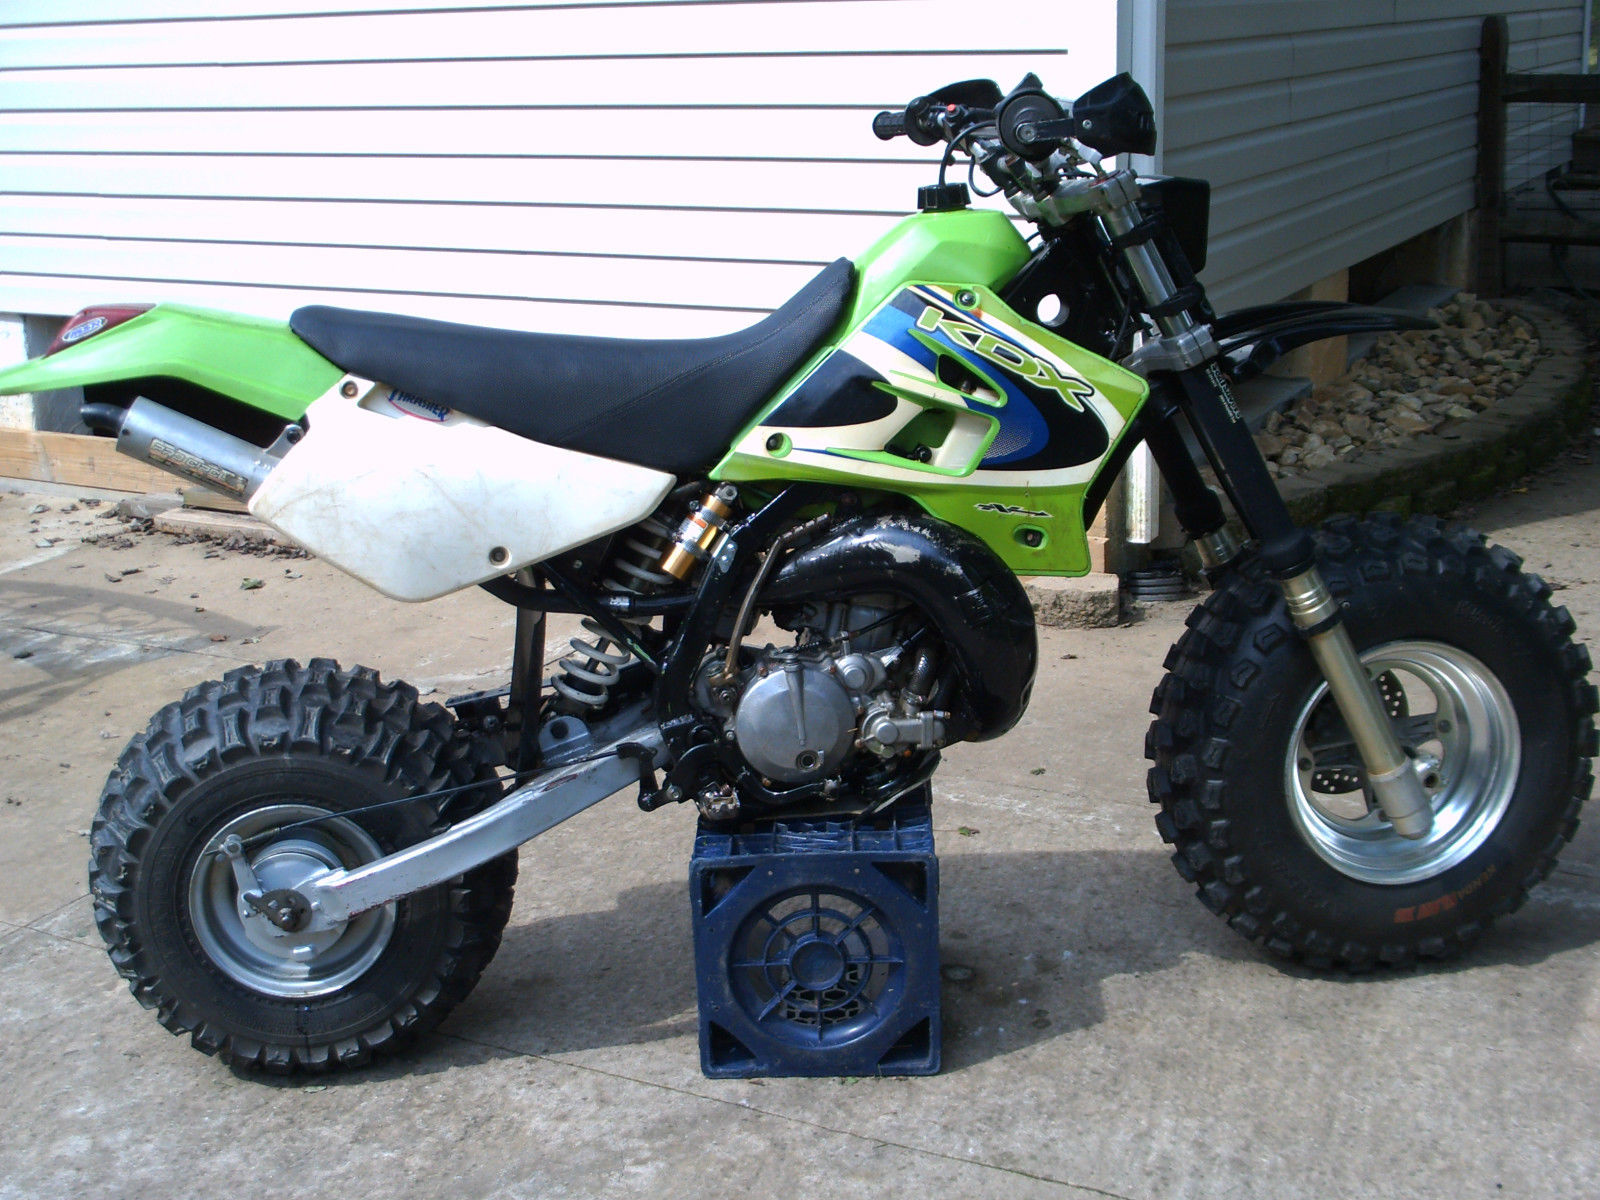 Vin Number Location On The Yamaha Rhino further Honda Atv Vin Location furthermore Engine Vin Code For Size besides Engine Vin Location On Dodge Magnum also Kawasaki Small Engine Model Number Location. on kawasaki vin identification